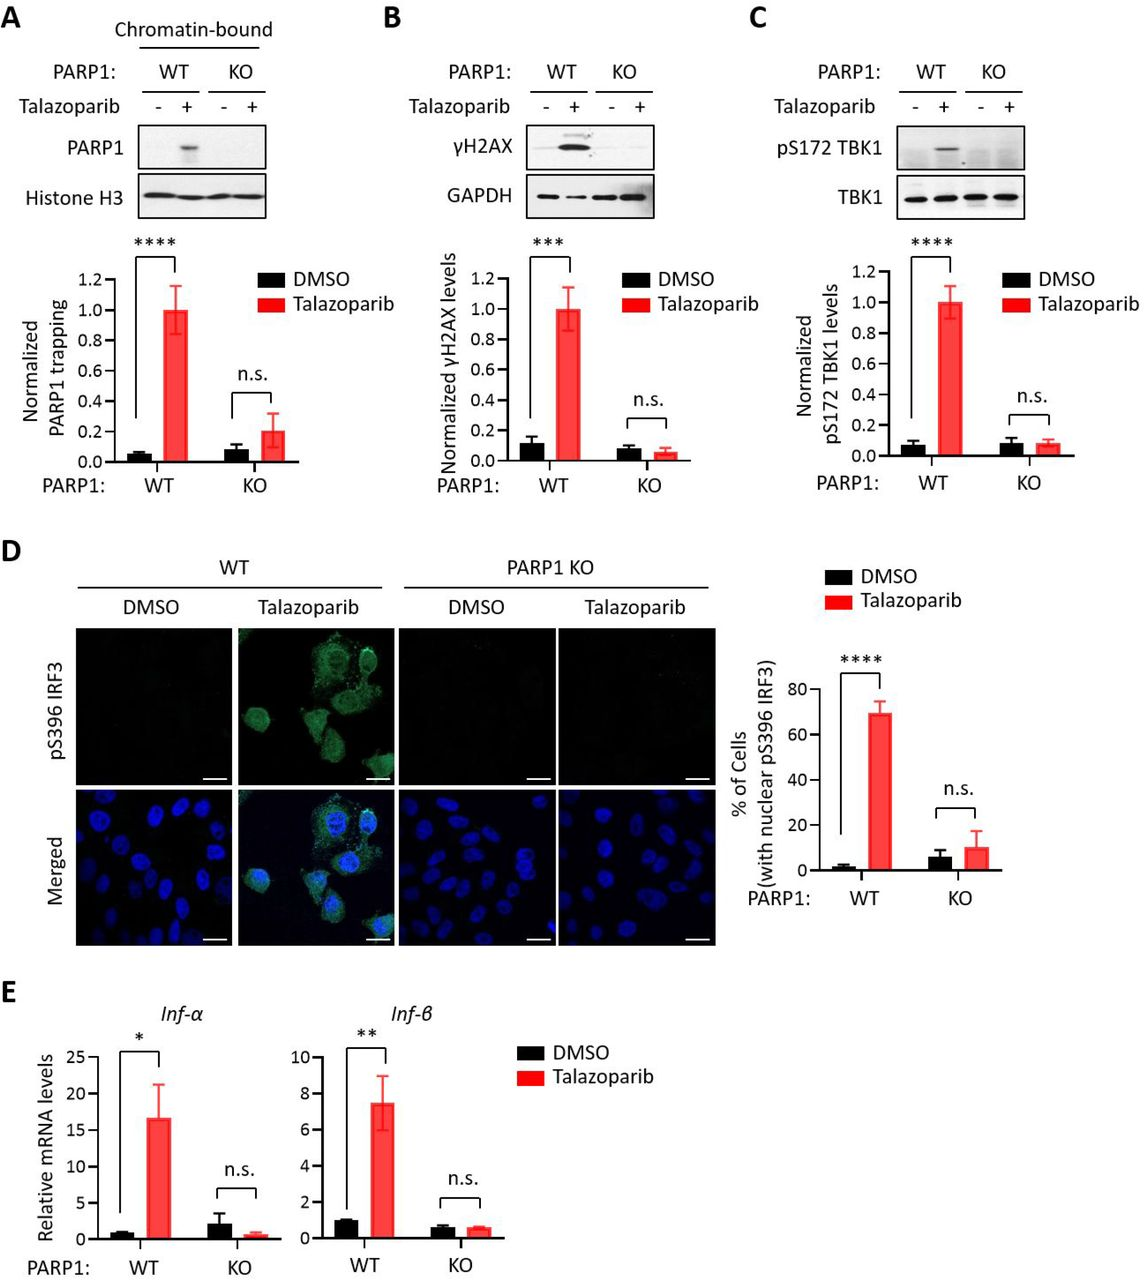 The PARP1 protein is required for PARPi-induced innate immune signaling. (A) PARPi-induced PARP1 trapping in wild-type (WT) and PARP1 knockout (KO) HeLa cells. Cell were also treated with or without Talazoparib (10 μM for 72 hrs). Top, chromatin-bound fractions were isolated and were probed using the indicated antibodies. Histone H3 was used as the loading control. Bottom, the graph shows the quantification of the level of PARP1 trapping. Values were presented as means ± SD from three biological replicates. Significance was determined with two-way ANOVA. ****p